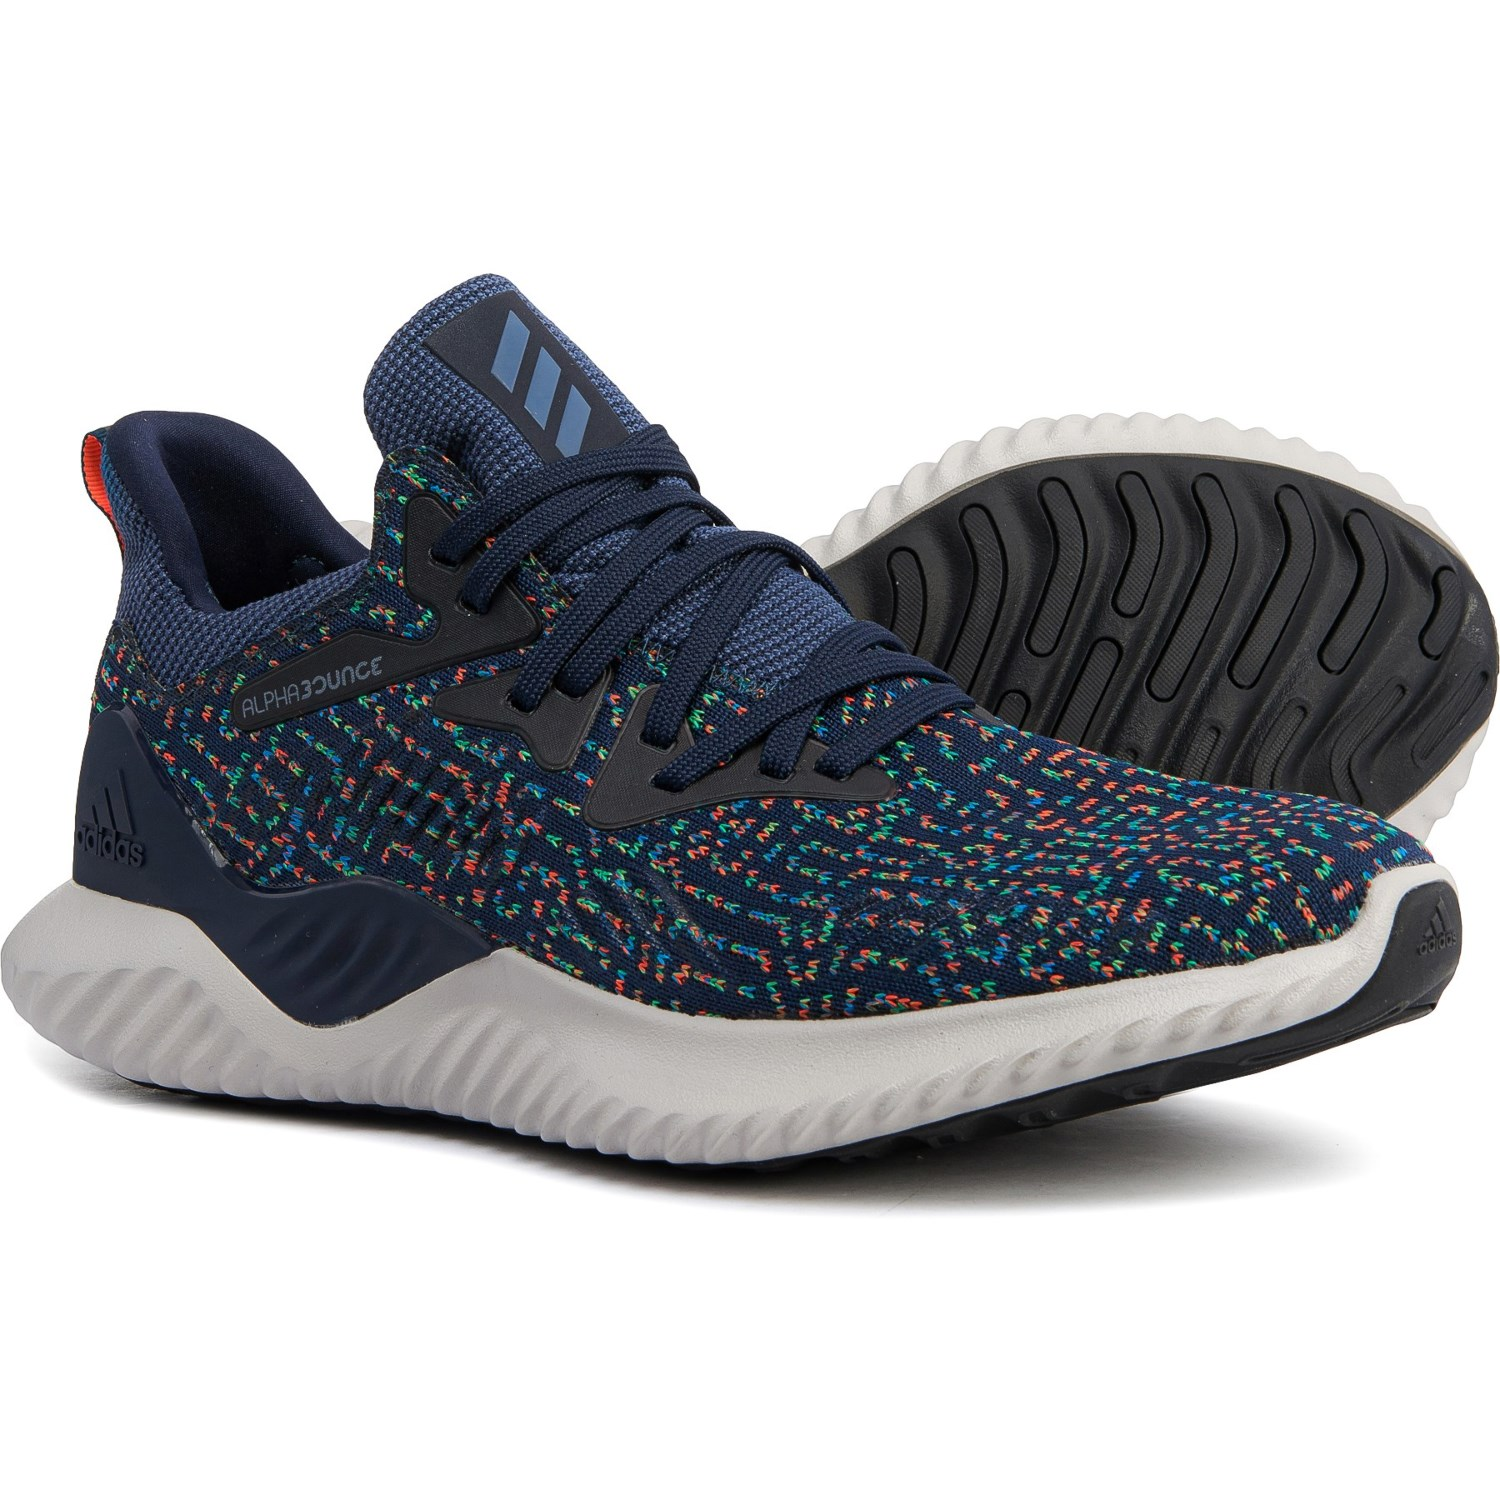 adidas AlphaBOUNCE Beyond CK Shoes (For Men)